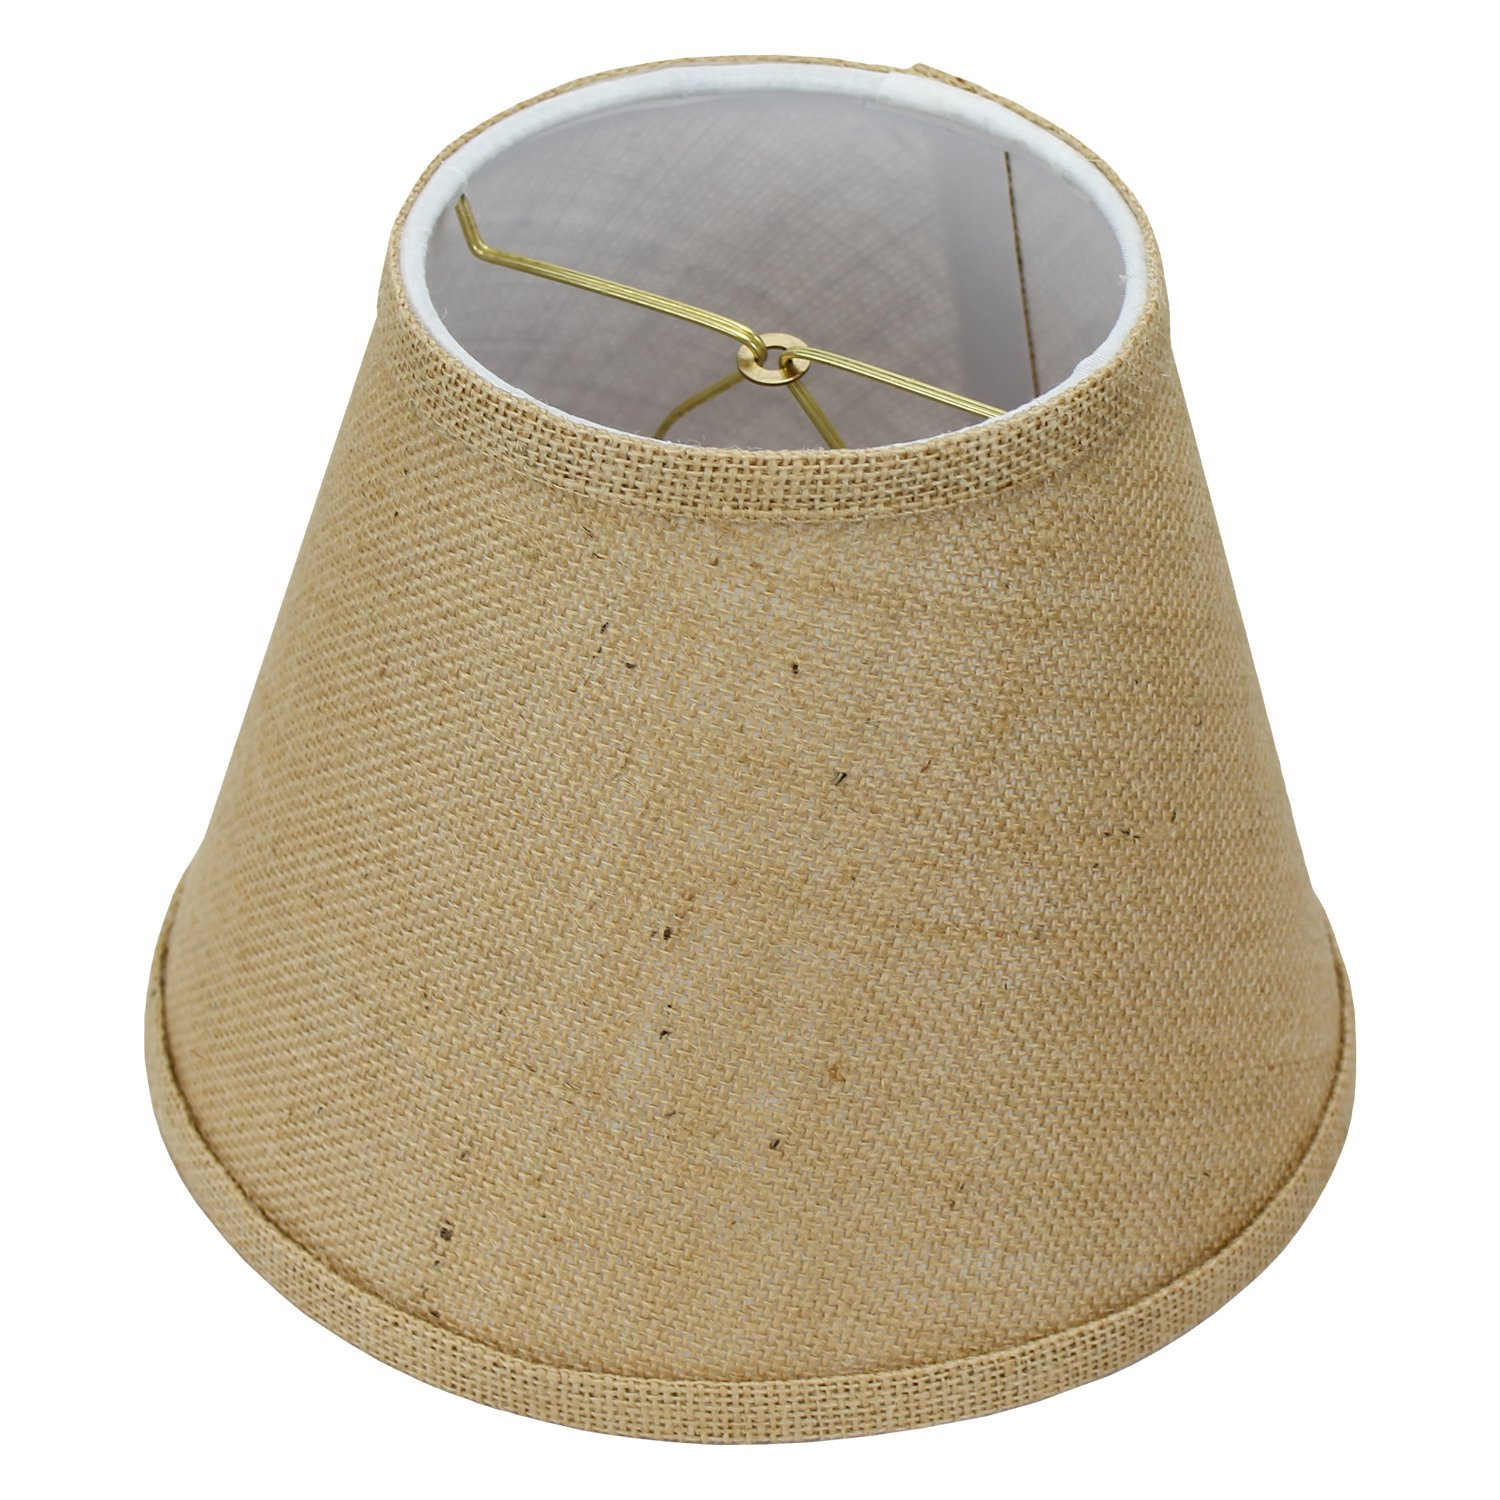 FenchelShades.com Lampshade 5'' Top Diameter x 9'' Bottom Diameter x 7'' Slant Height with Clip-On Attachment for Standard Edison-Style Lightbulb (Burlap Natural)